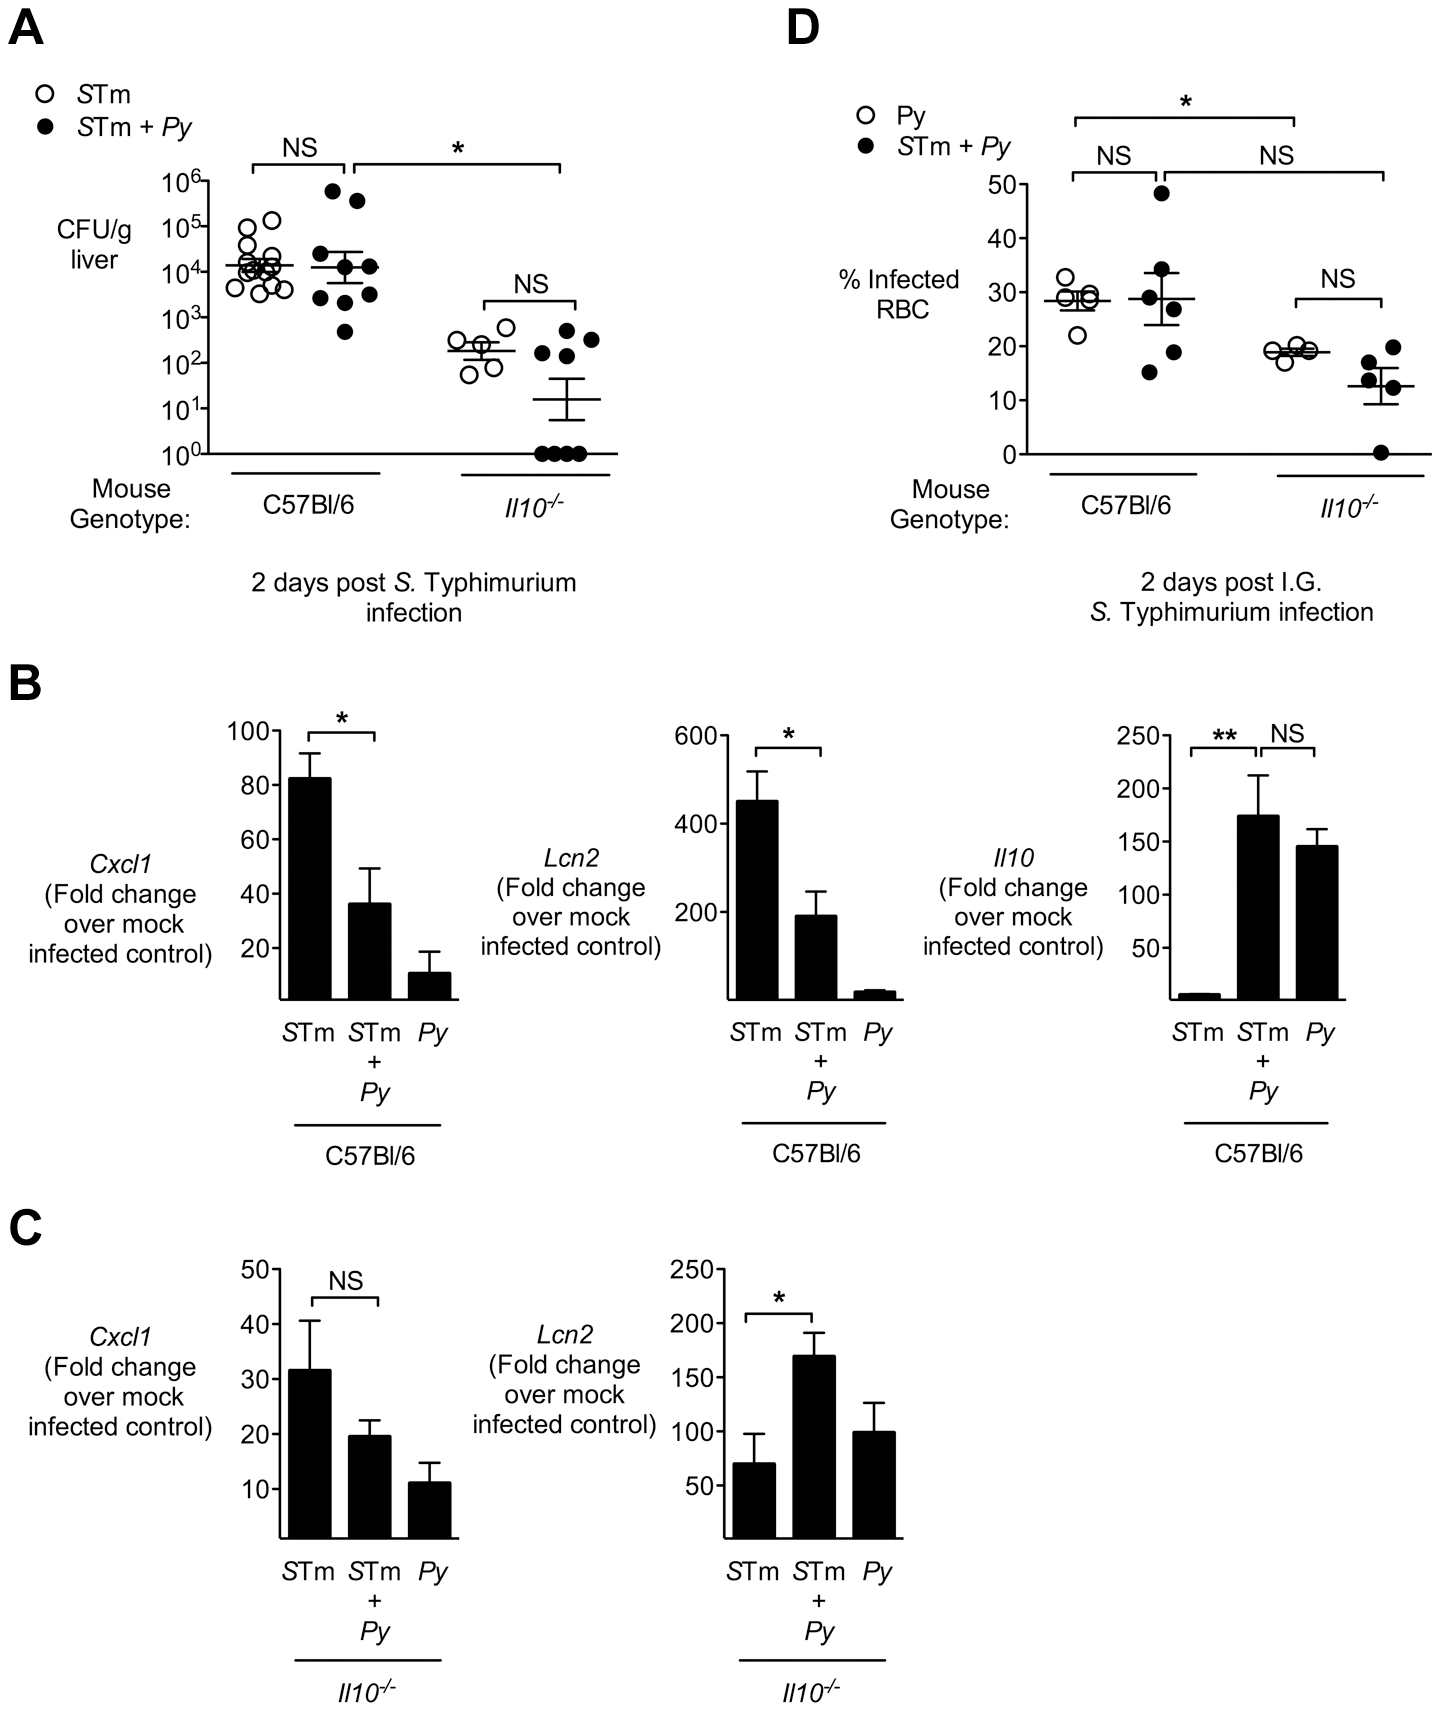 IL-10 contributes to blunting of neutrophil chemokines in livers of malaria parasite-infected C57BL/6 mice.